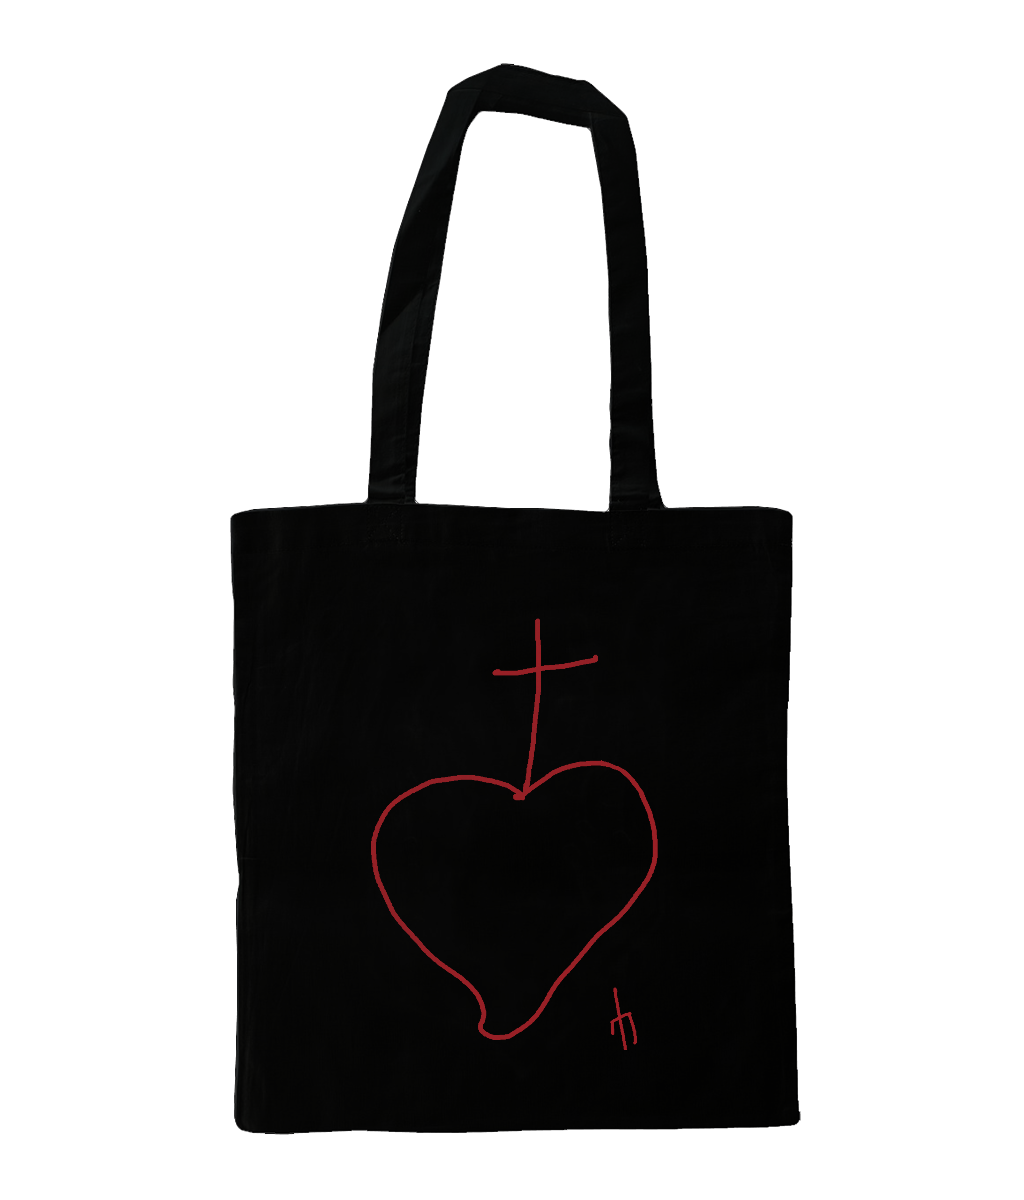 Shoulder Tote Bag - CRUX (r)